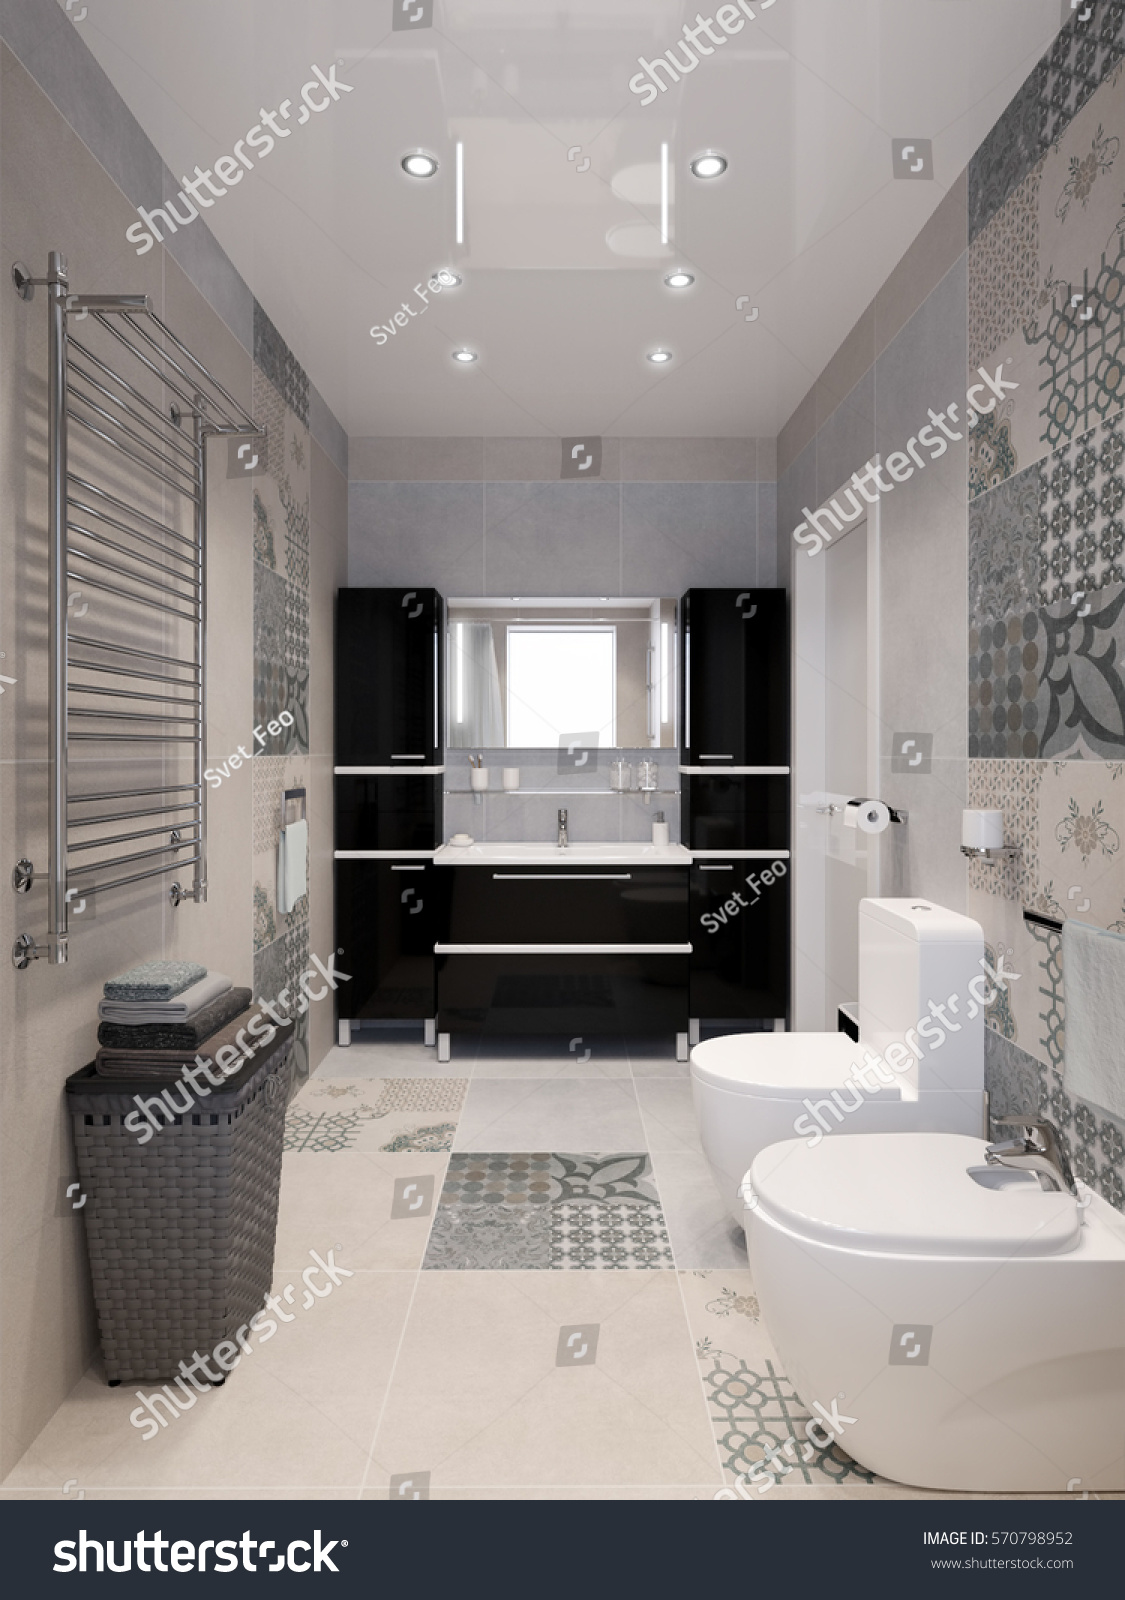 Modern bathroom interior with white beige gray tiles black cabinets shower and big mirror & Modern Bathroom Interior White Beige Gray Stock Illustration ...